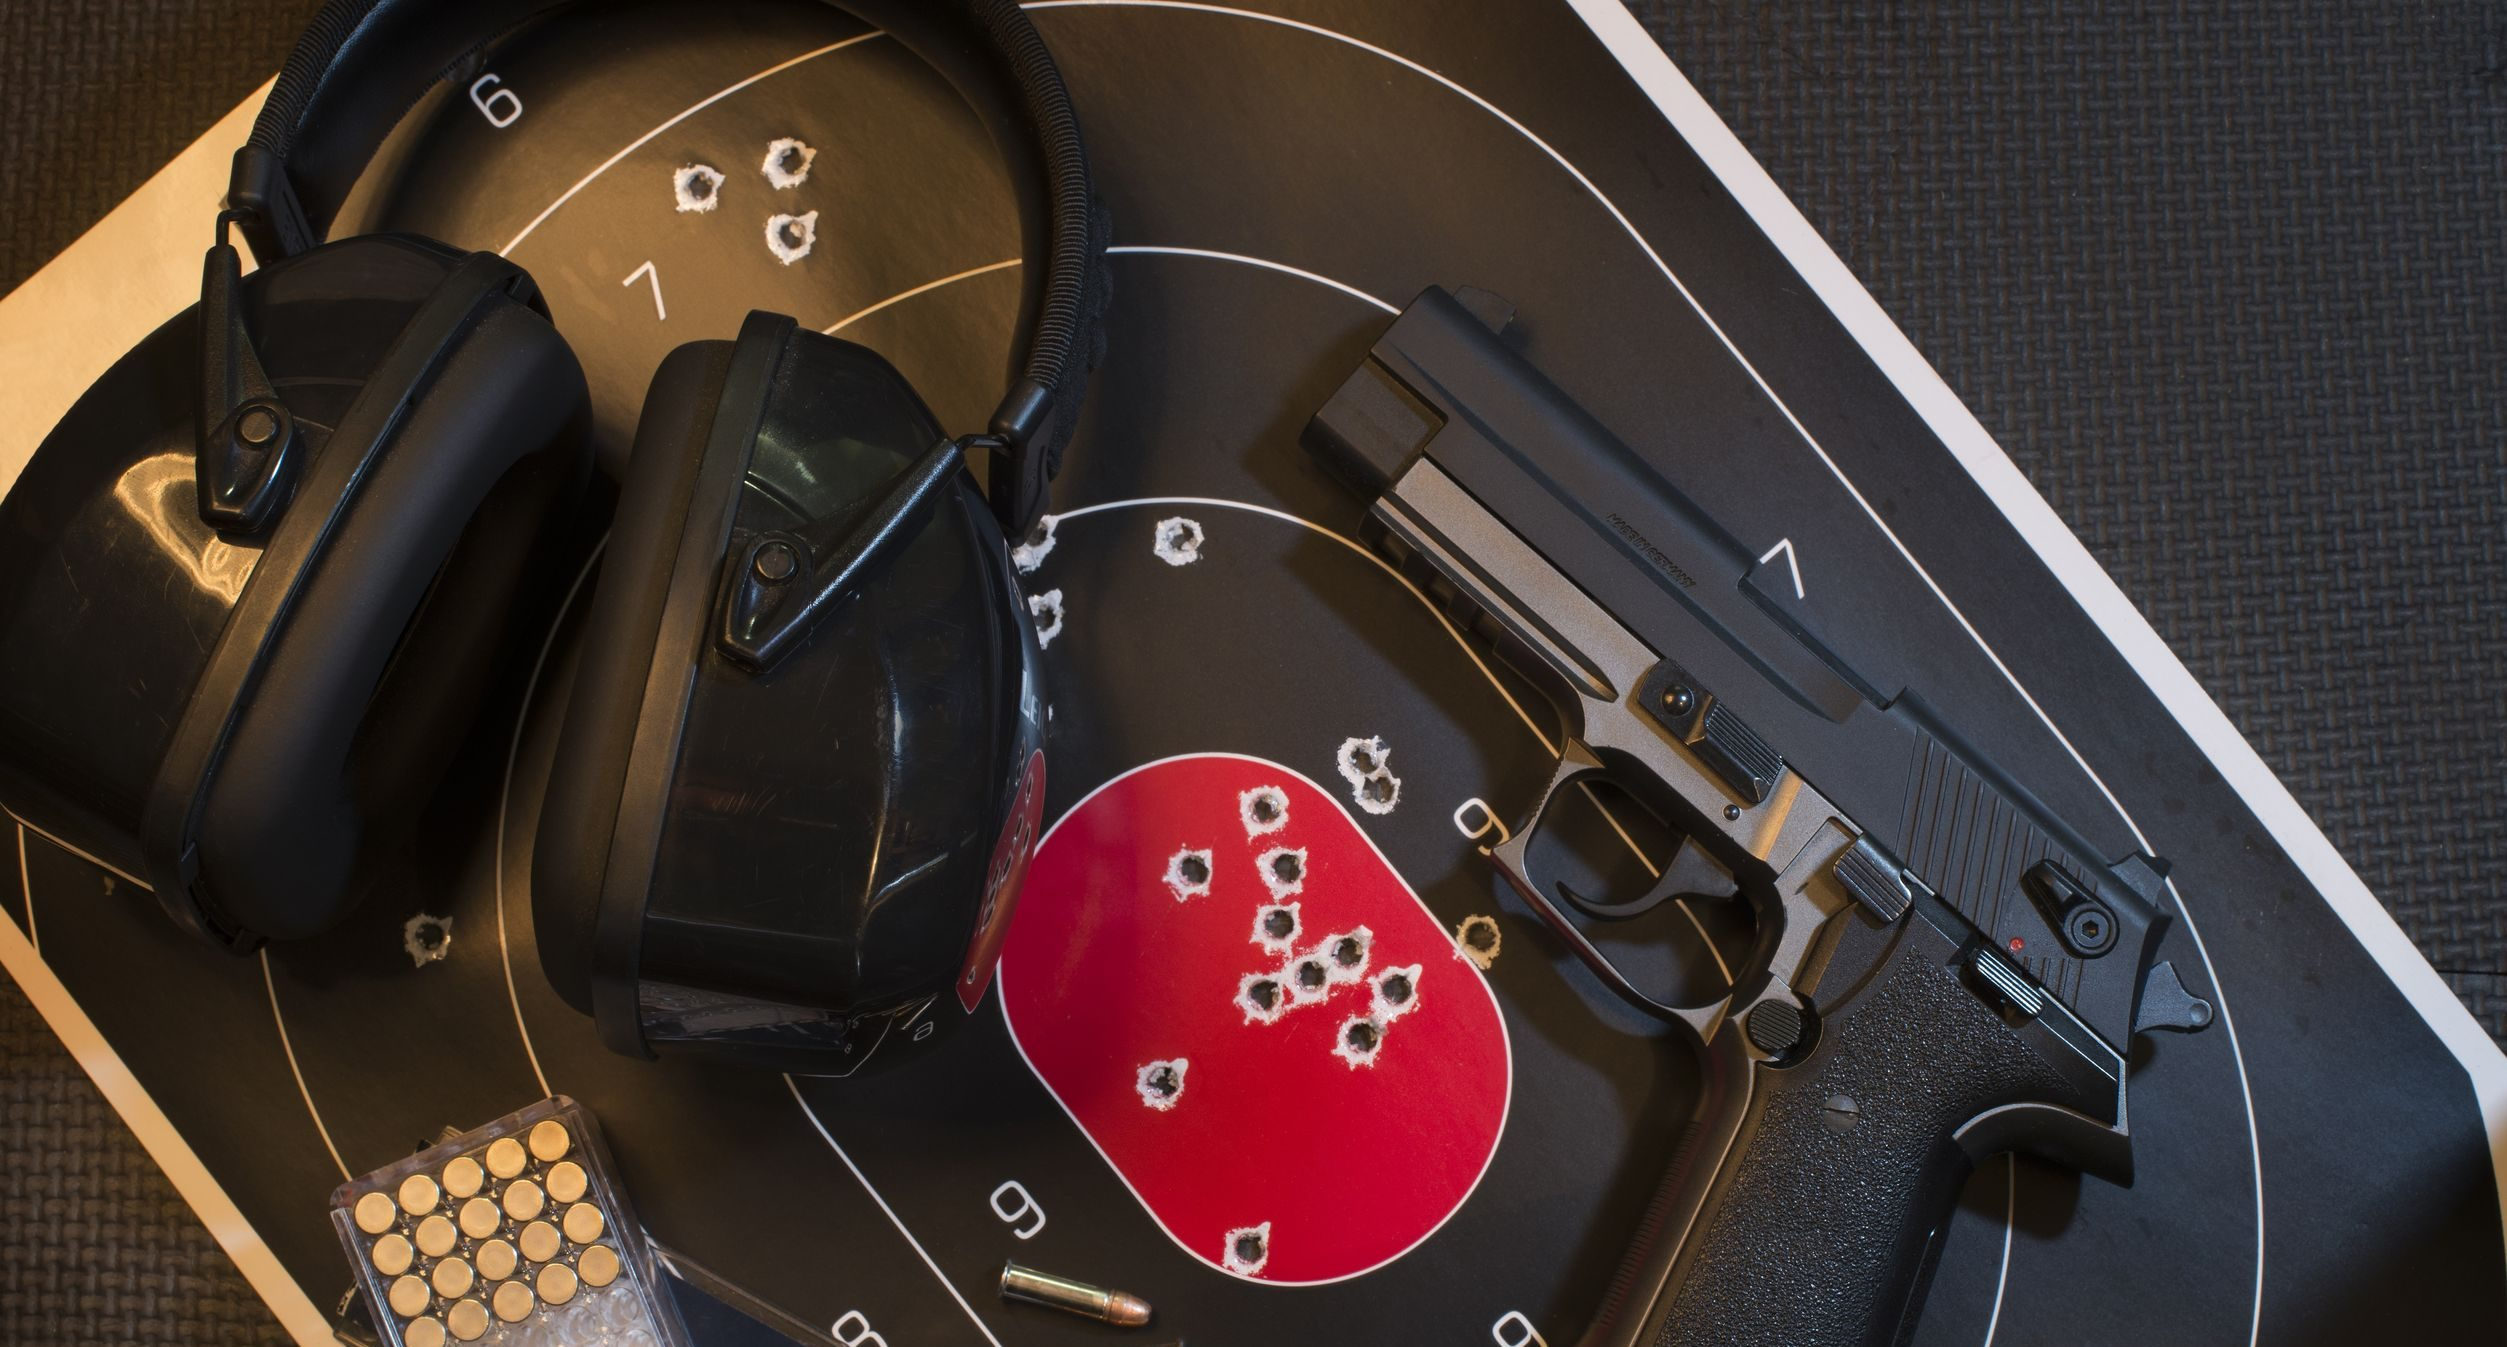 What Is the Most Powerful Gun You Can Legally Buy?